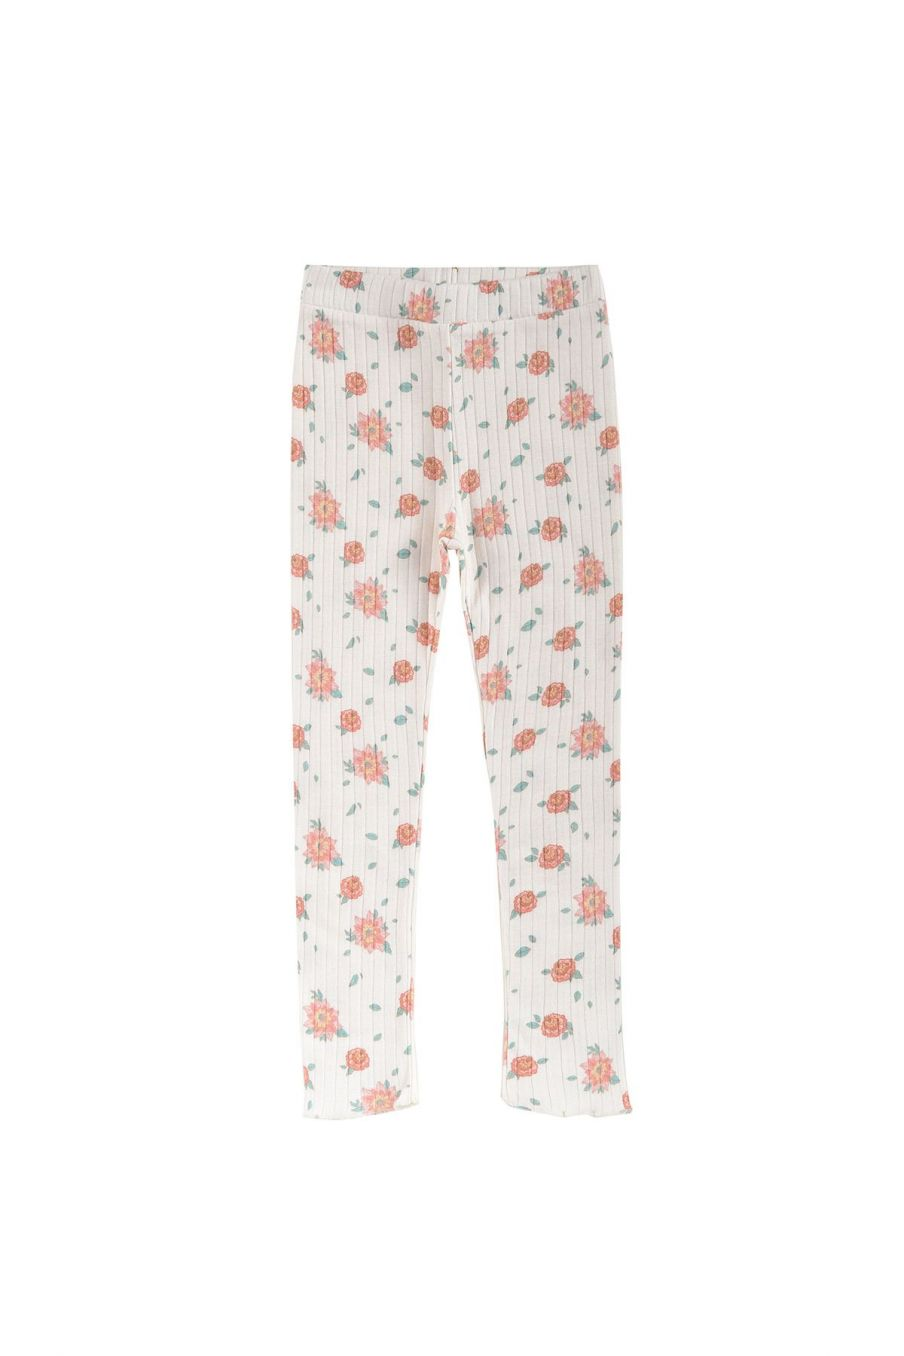 boheme chic vintage leggings fille anandou off-white flowers